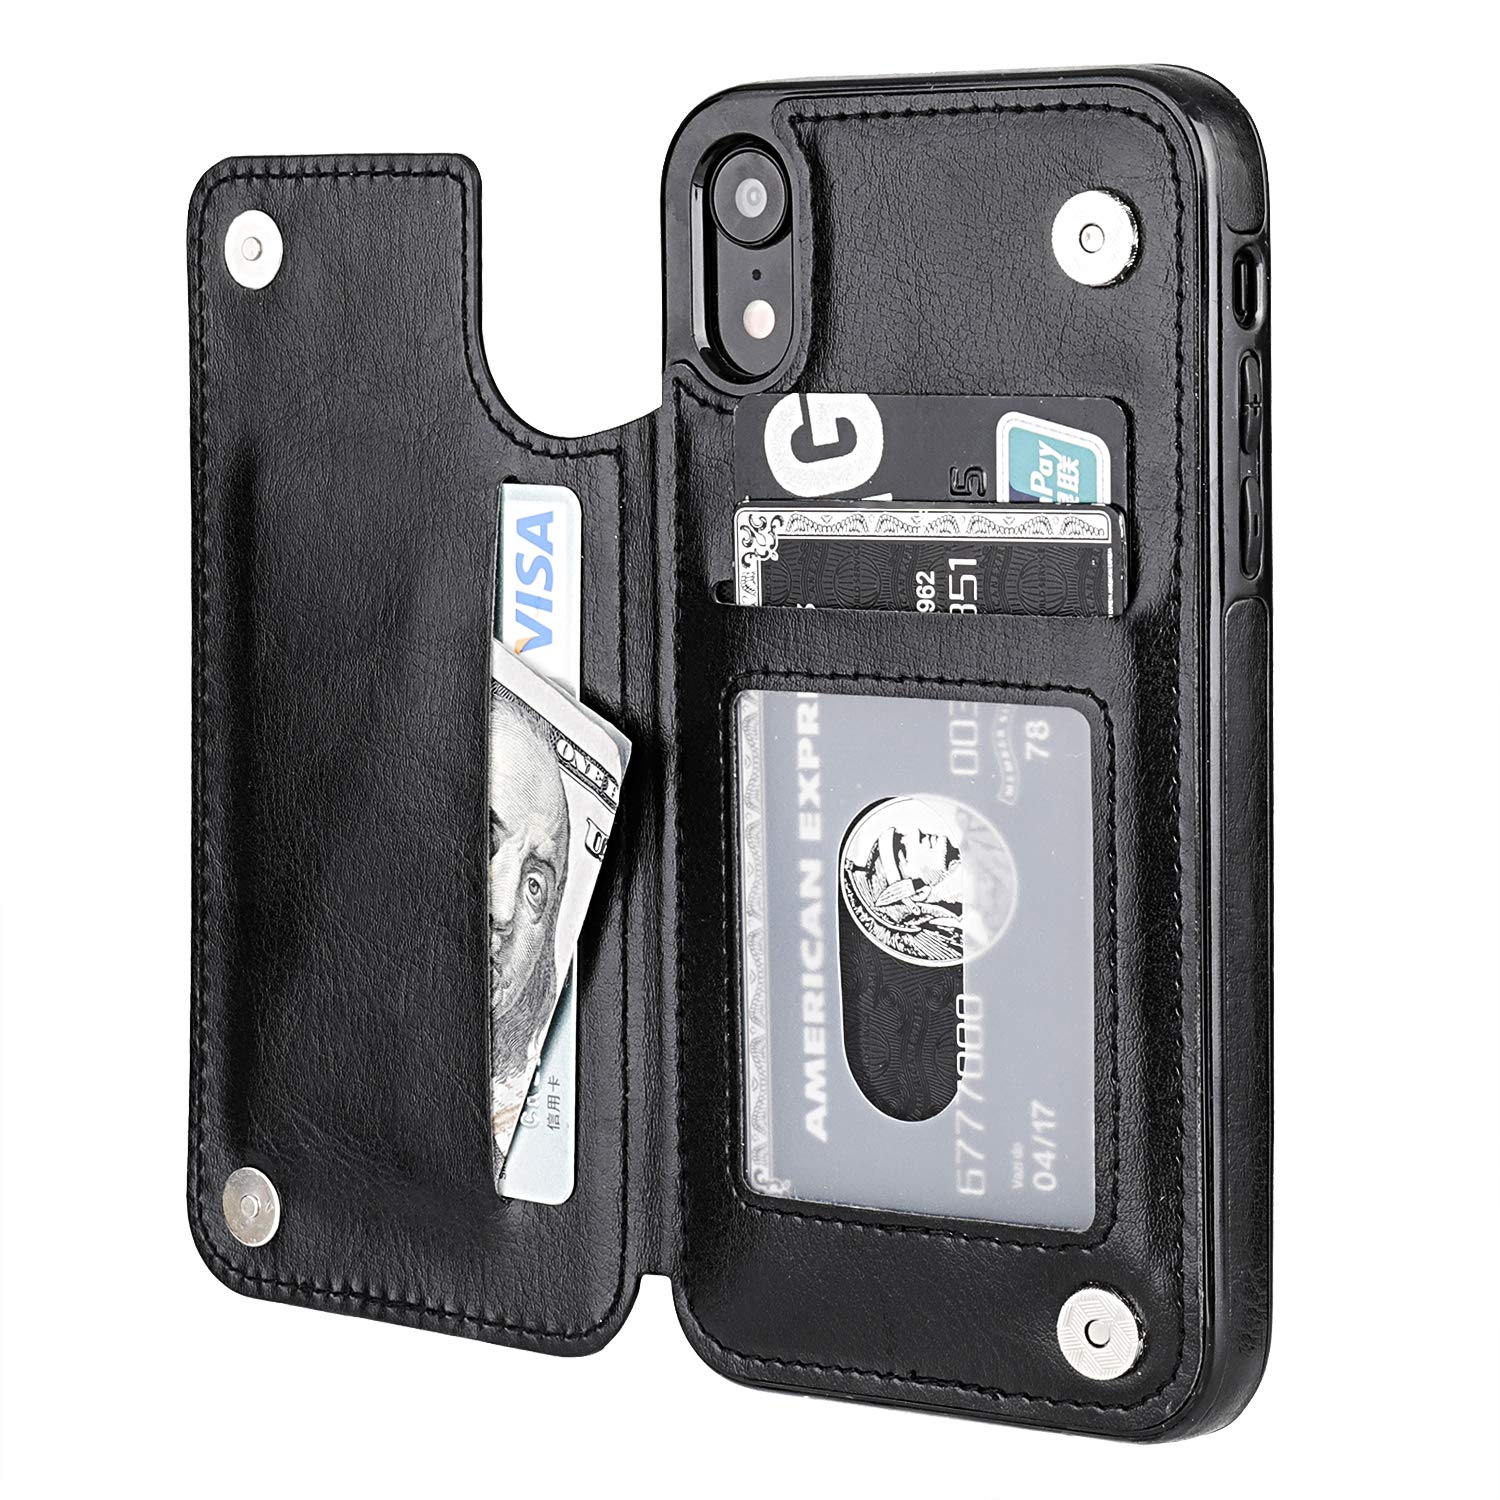 iPhone XR Wallet Case with Card Holder,OT ONETOP Premium PU Leather Kickstand Card Slots Case,Double Magnetic Clasp and Durable Shockproof Cover for iPhone XR 6.1 Inch(Black) by OT ONETOP